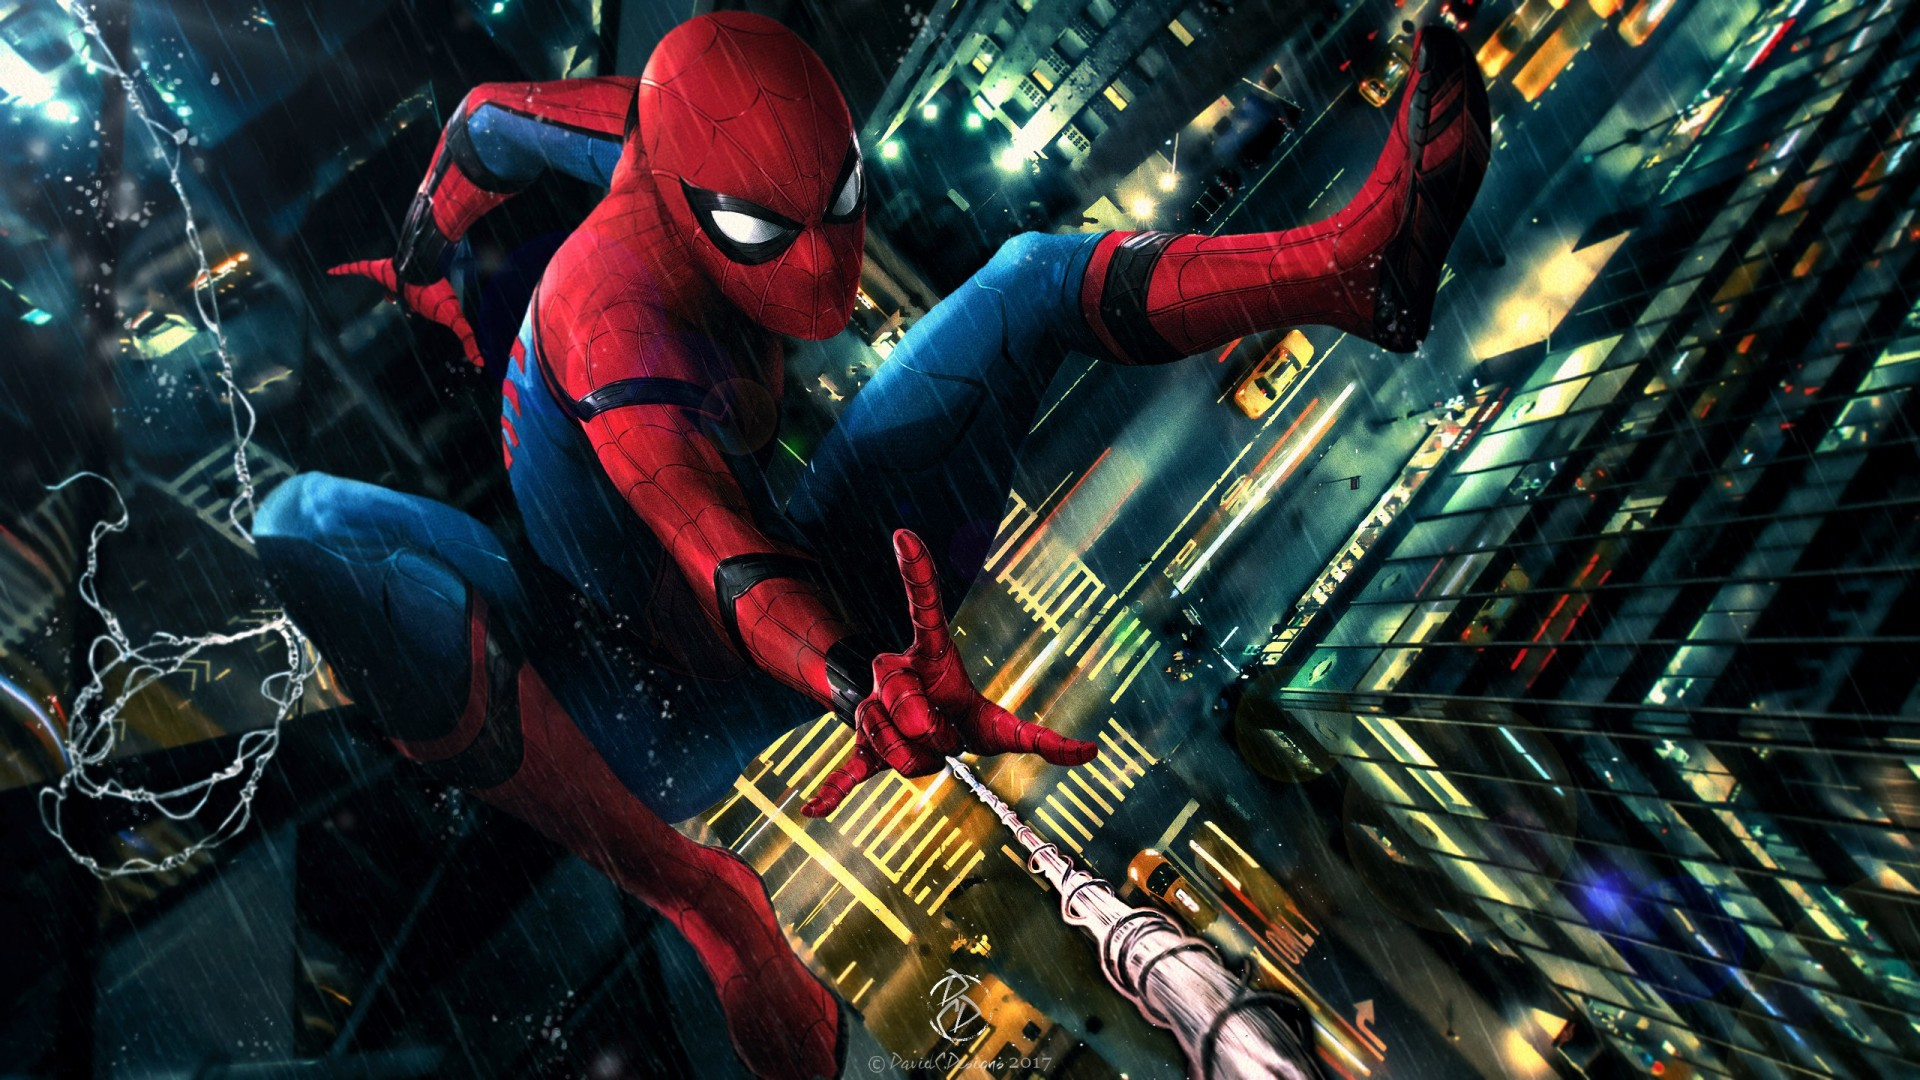 Cute Pets Wallpapers Hd Spider Man Homecoming Fan Art Wallpapers Hd Wallpapers